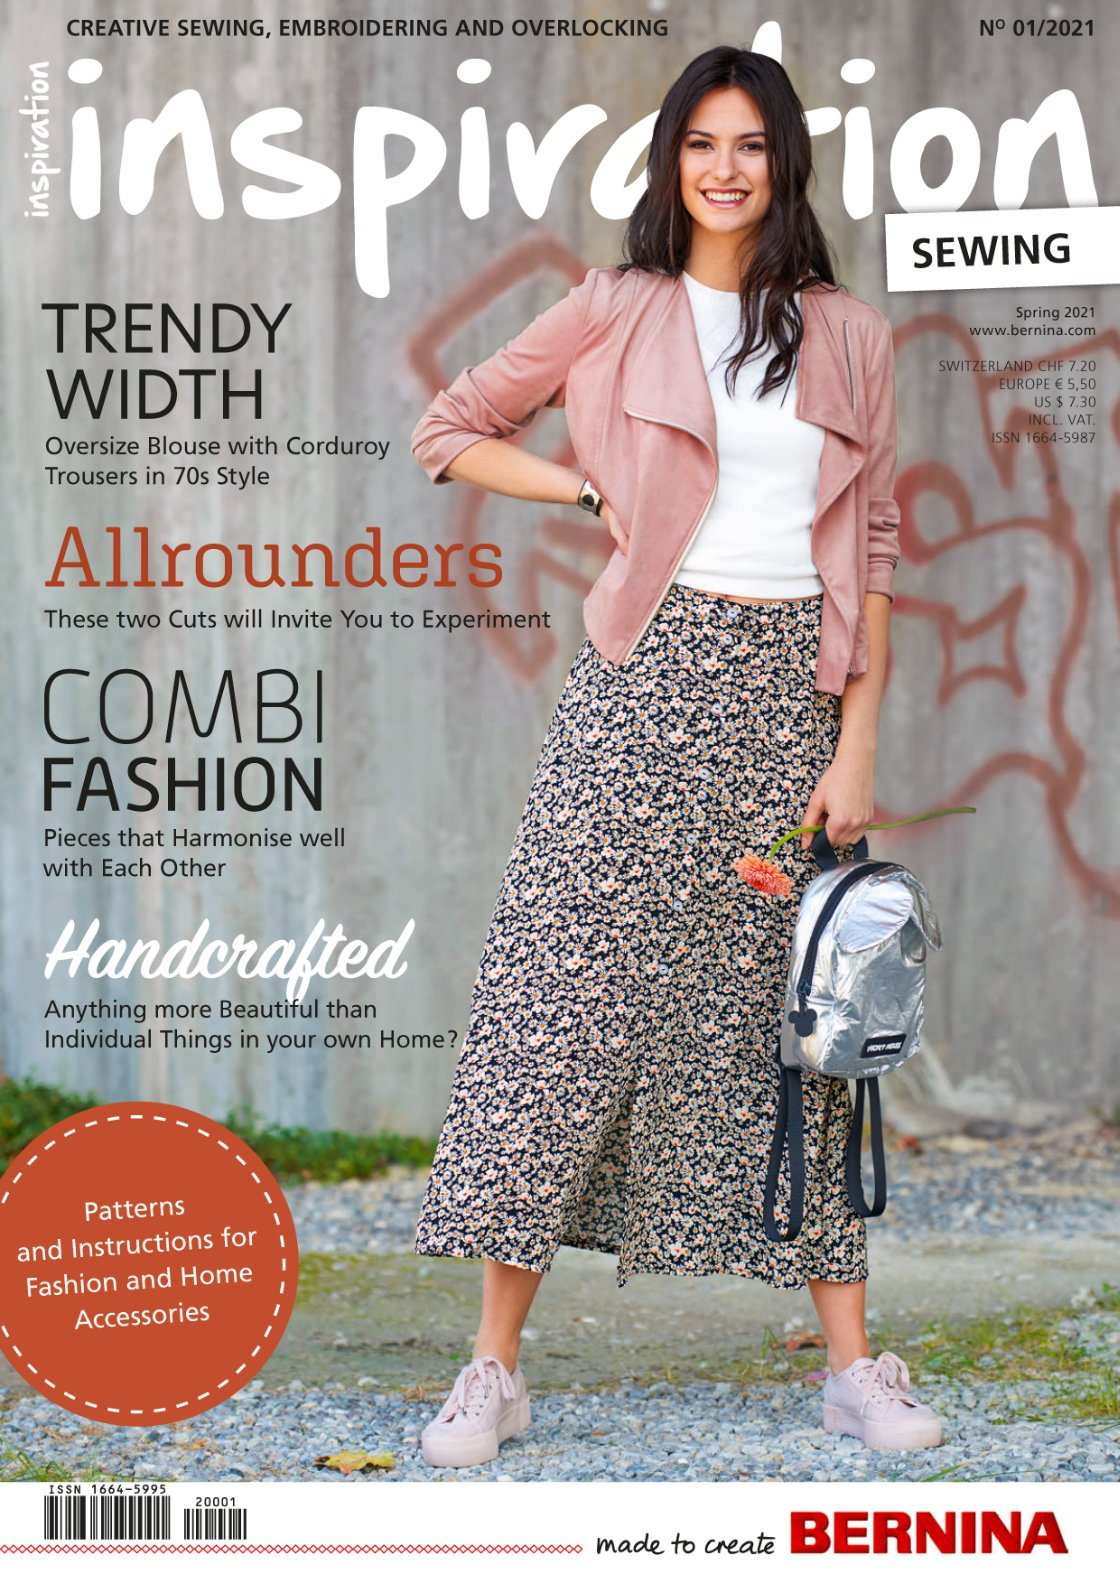 inspirationShop_Magazine_Cover_211-EN